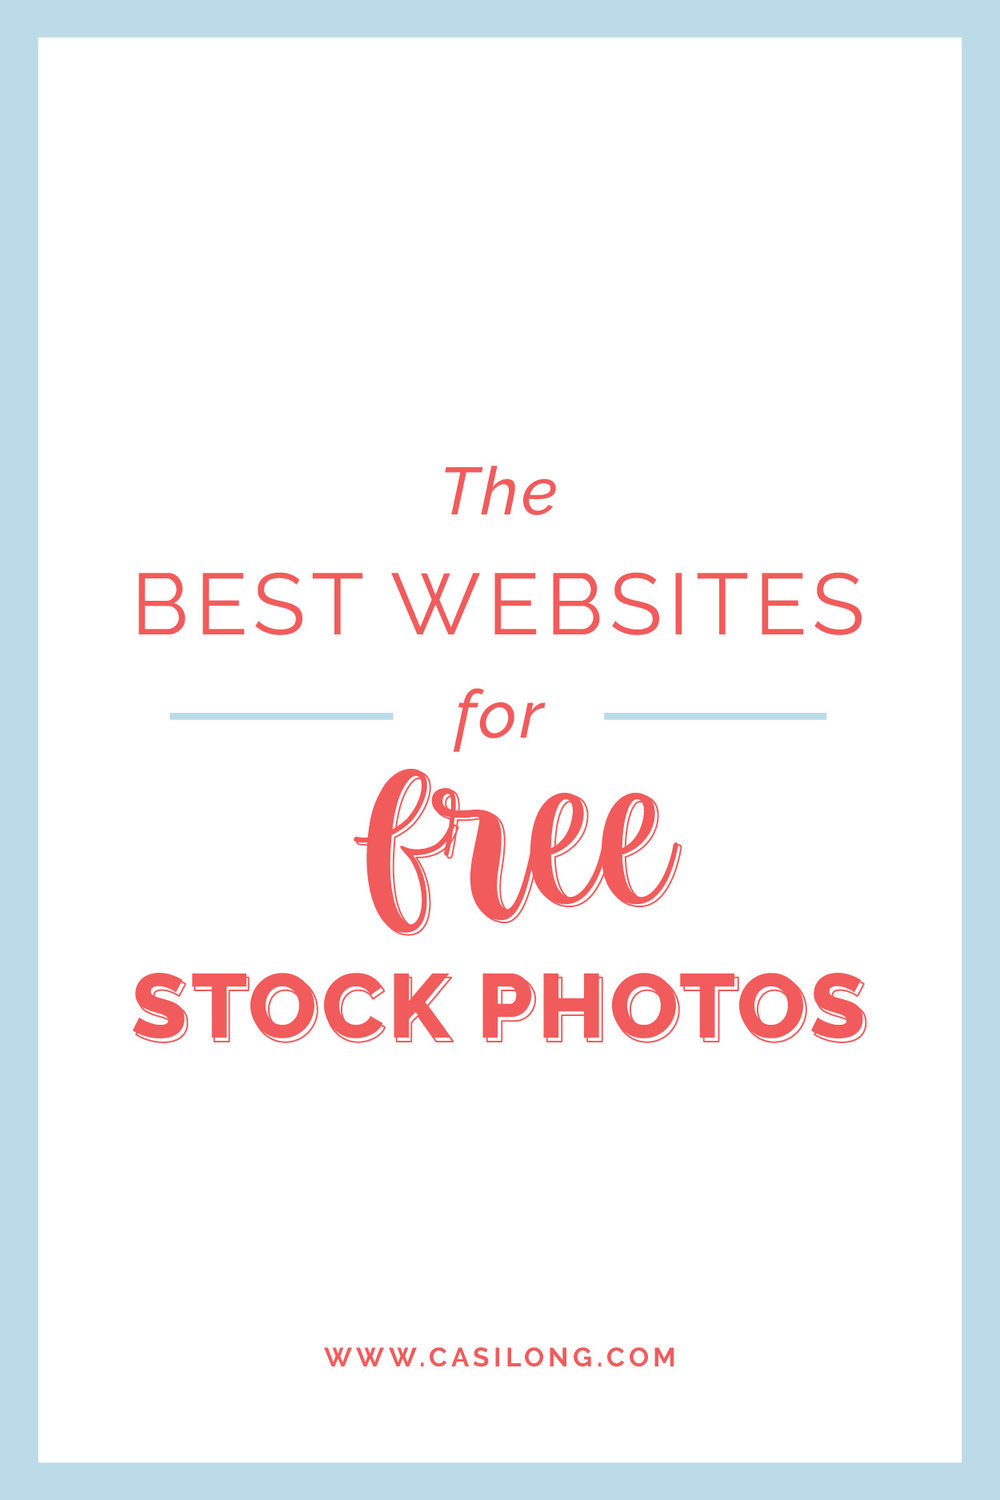 The Best Websites for Free Stock Photos | casilong.com #casilongdesign #fearlesspursuit